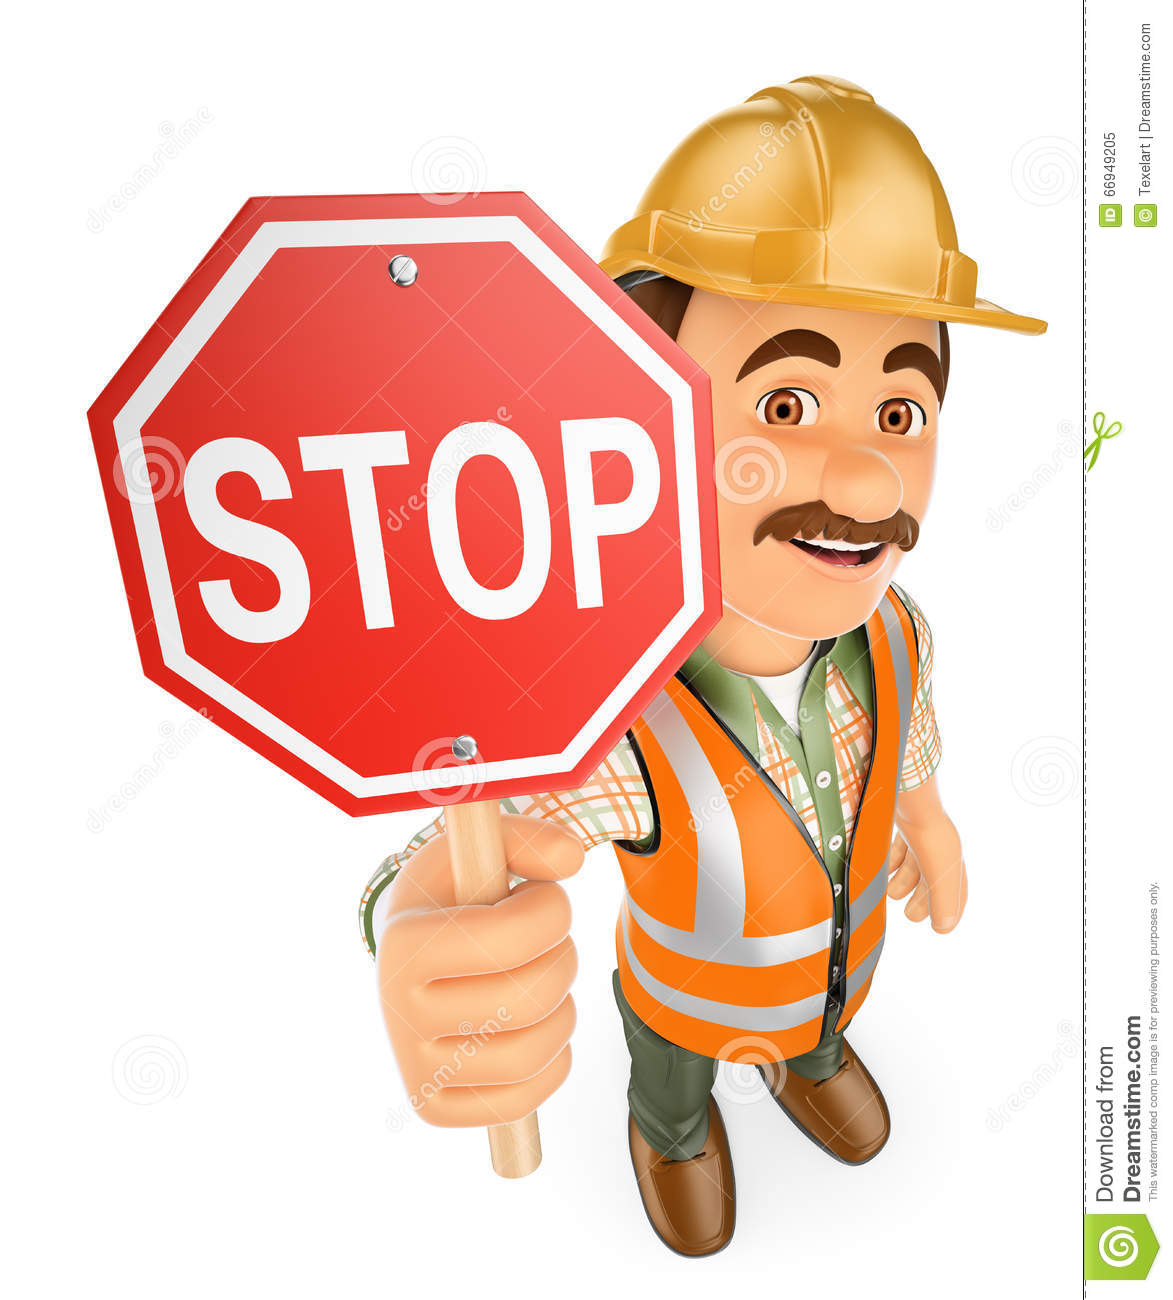 3D Construction worker with a stop signal